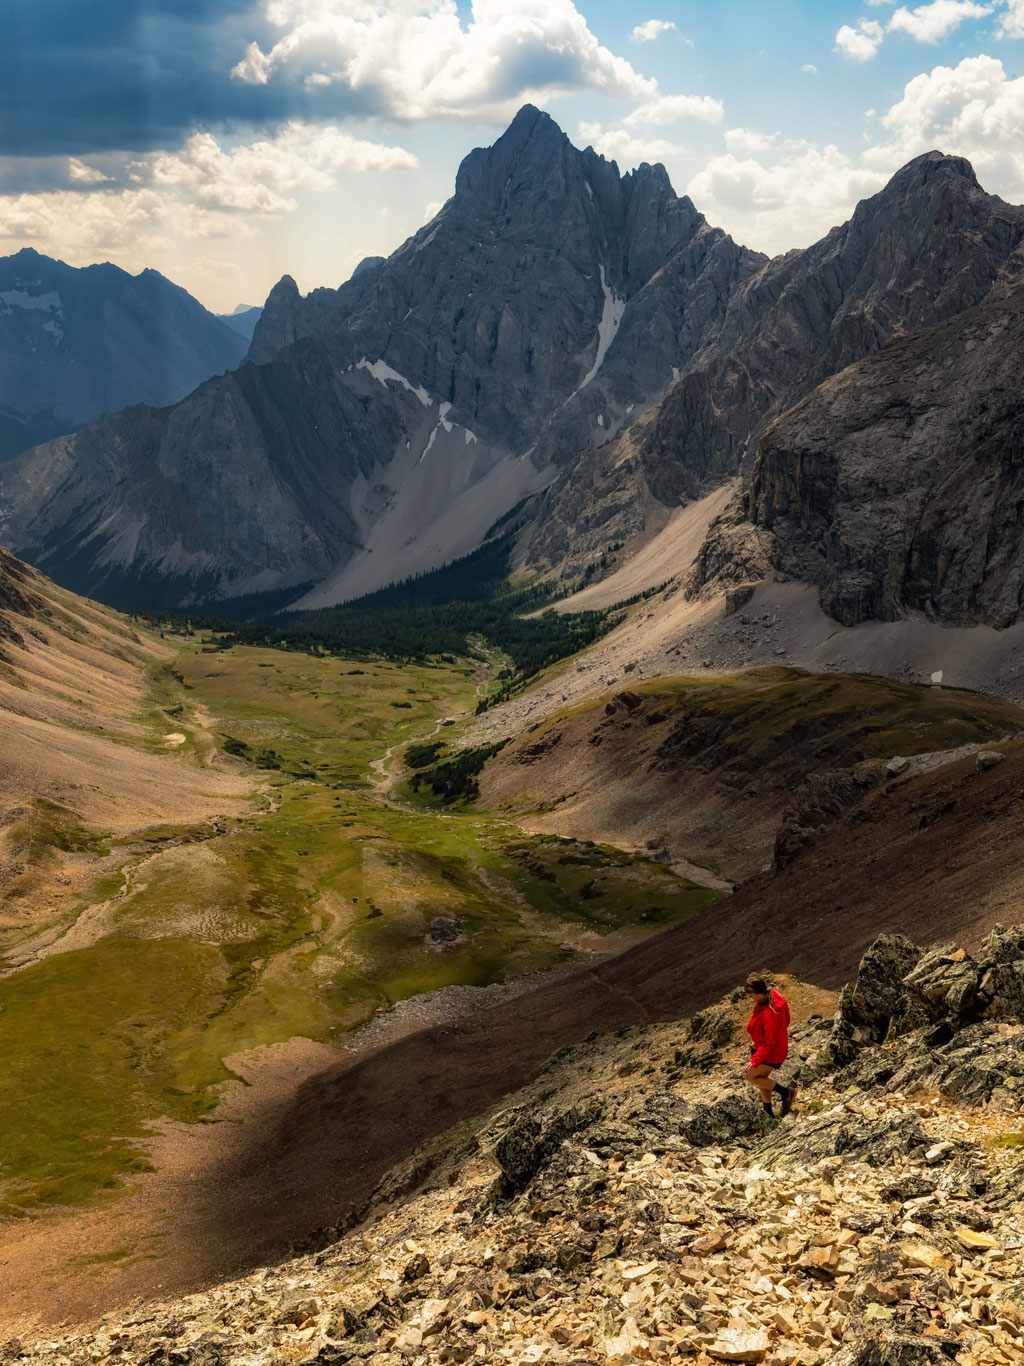 14 Day Hikes with Jaw-Dropping Views in Canmore and Kananaskis